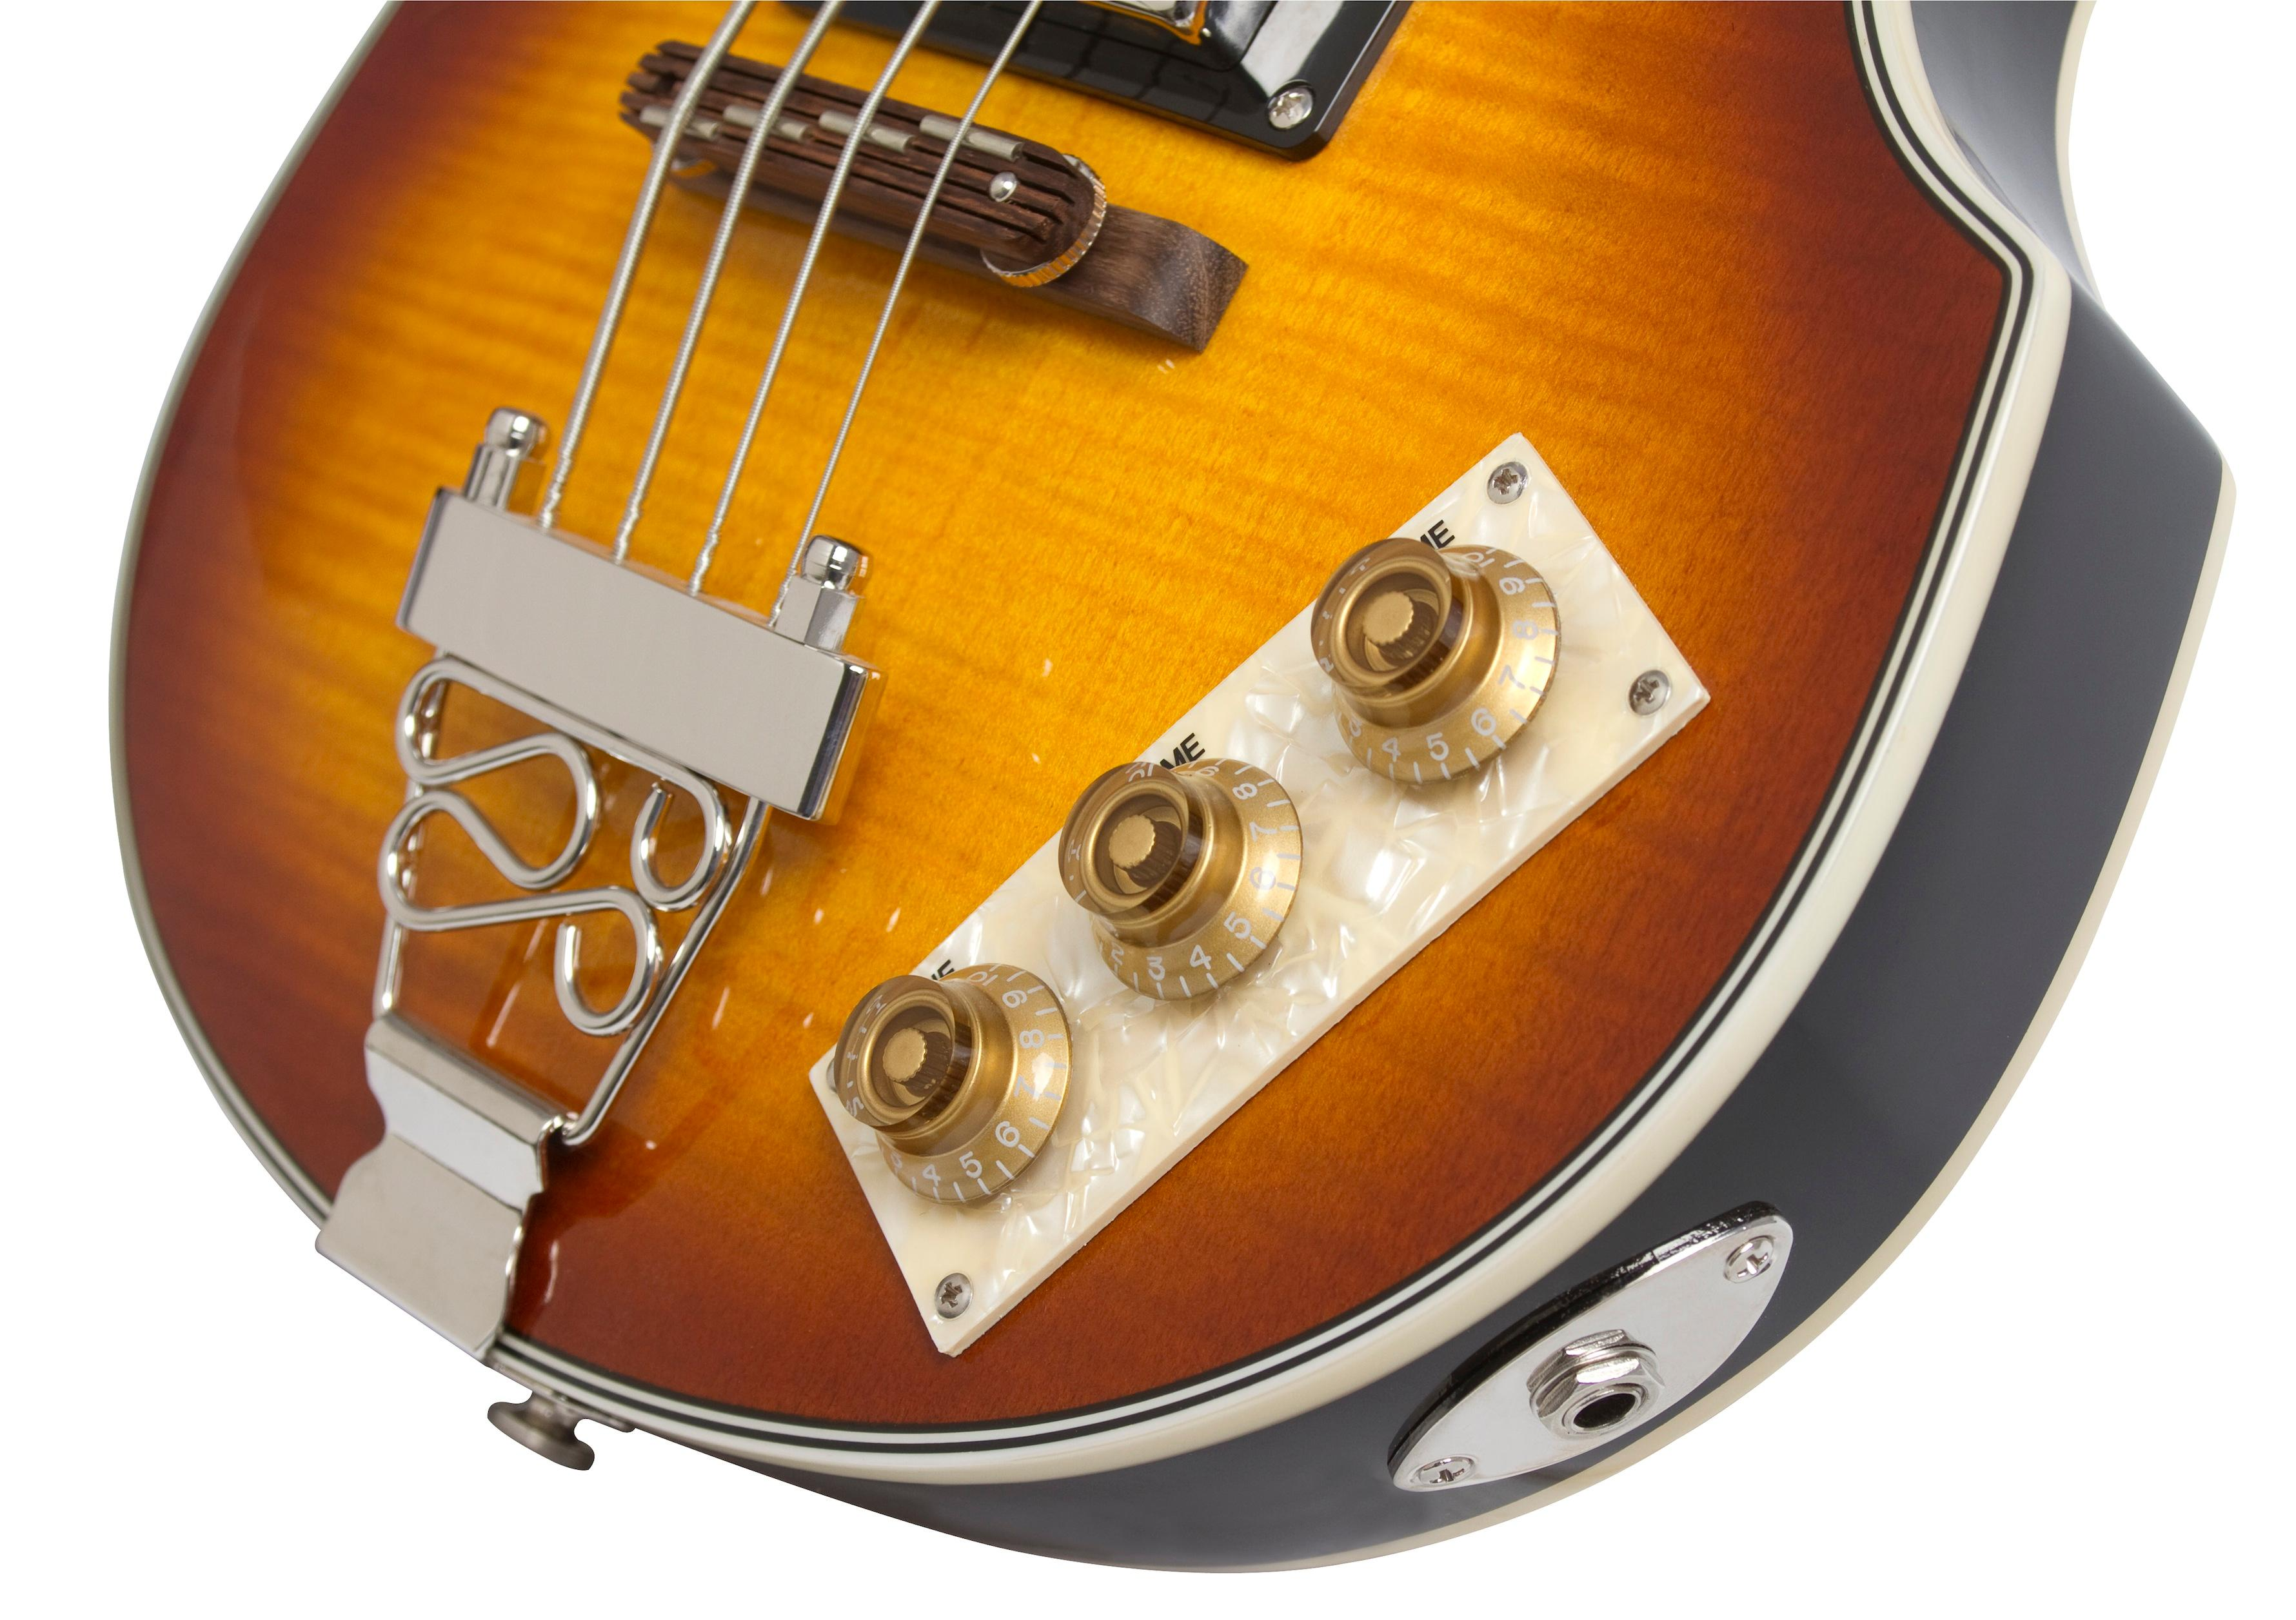 epiphone viola electric bass guitar vintage sunburst